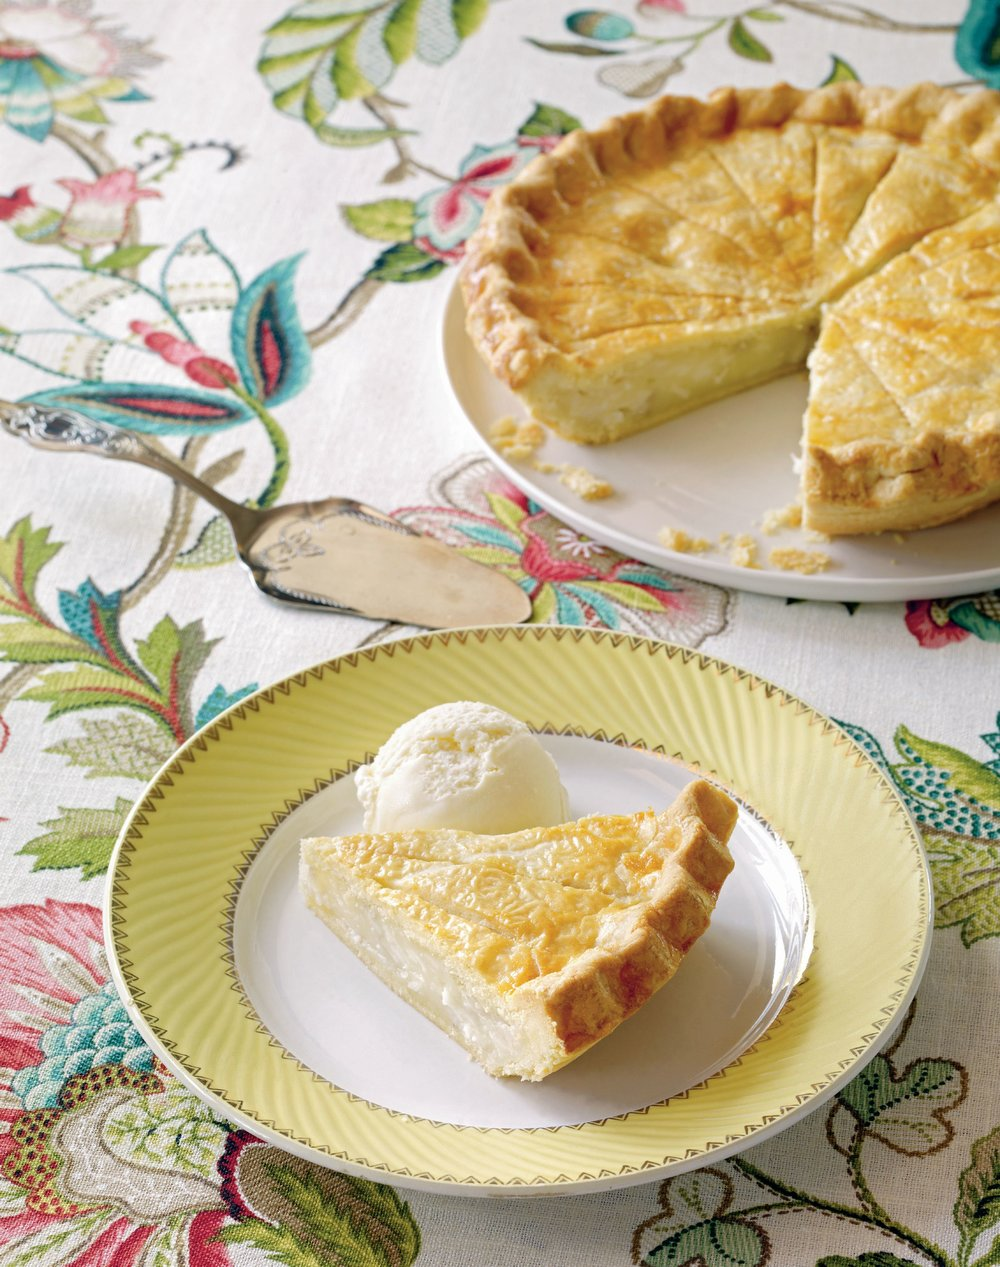 Buko pie | 7000 Islands cookbook